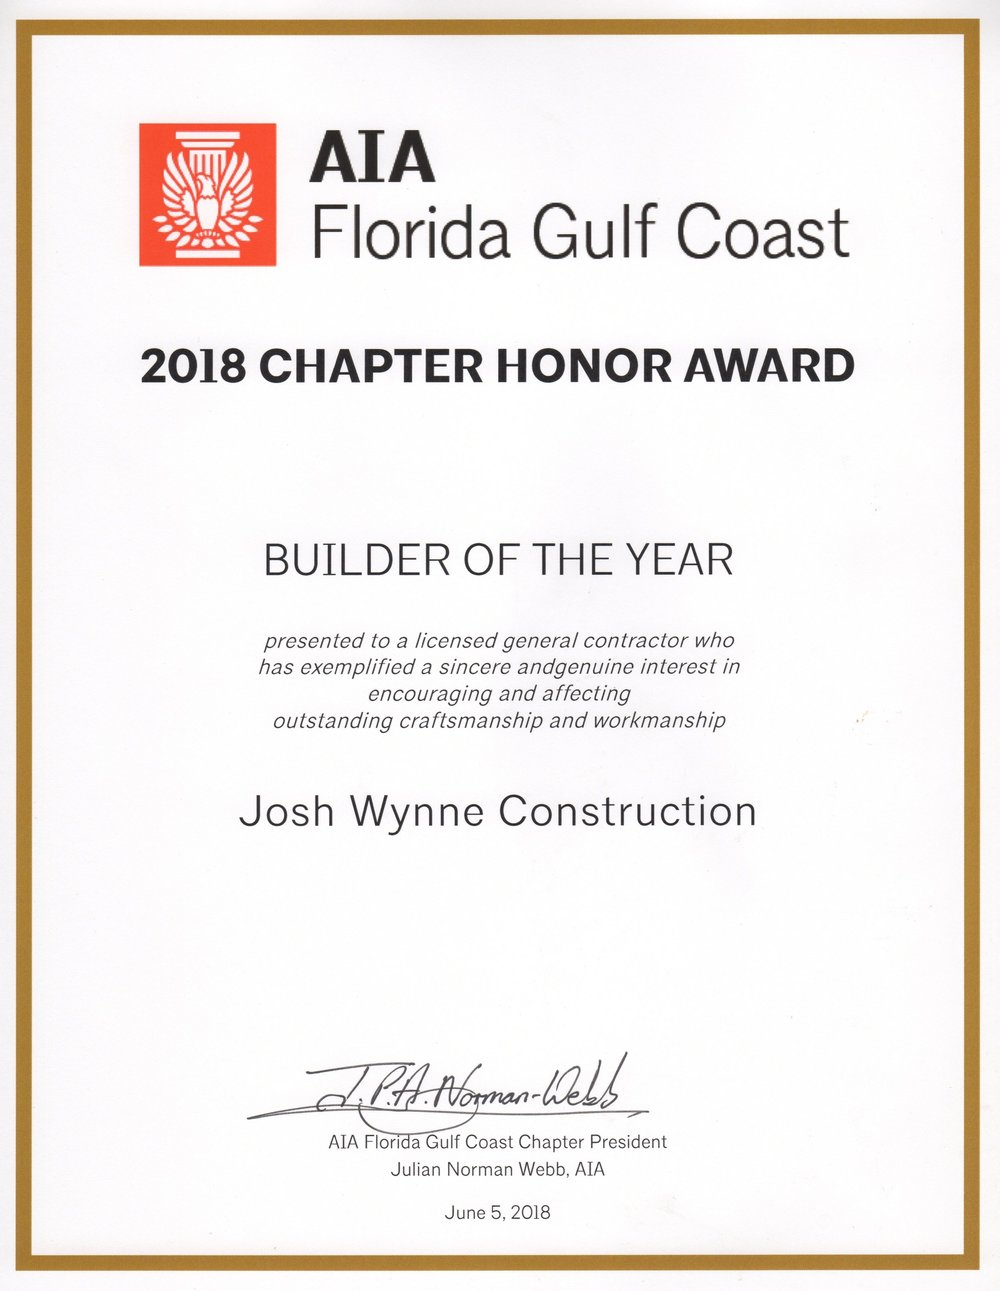 AIA Builder of the Year 2018.jpg